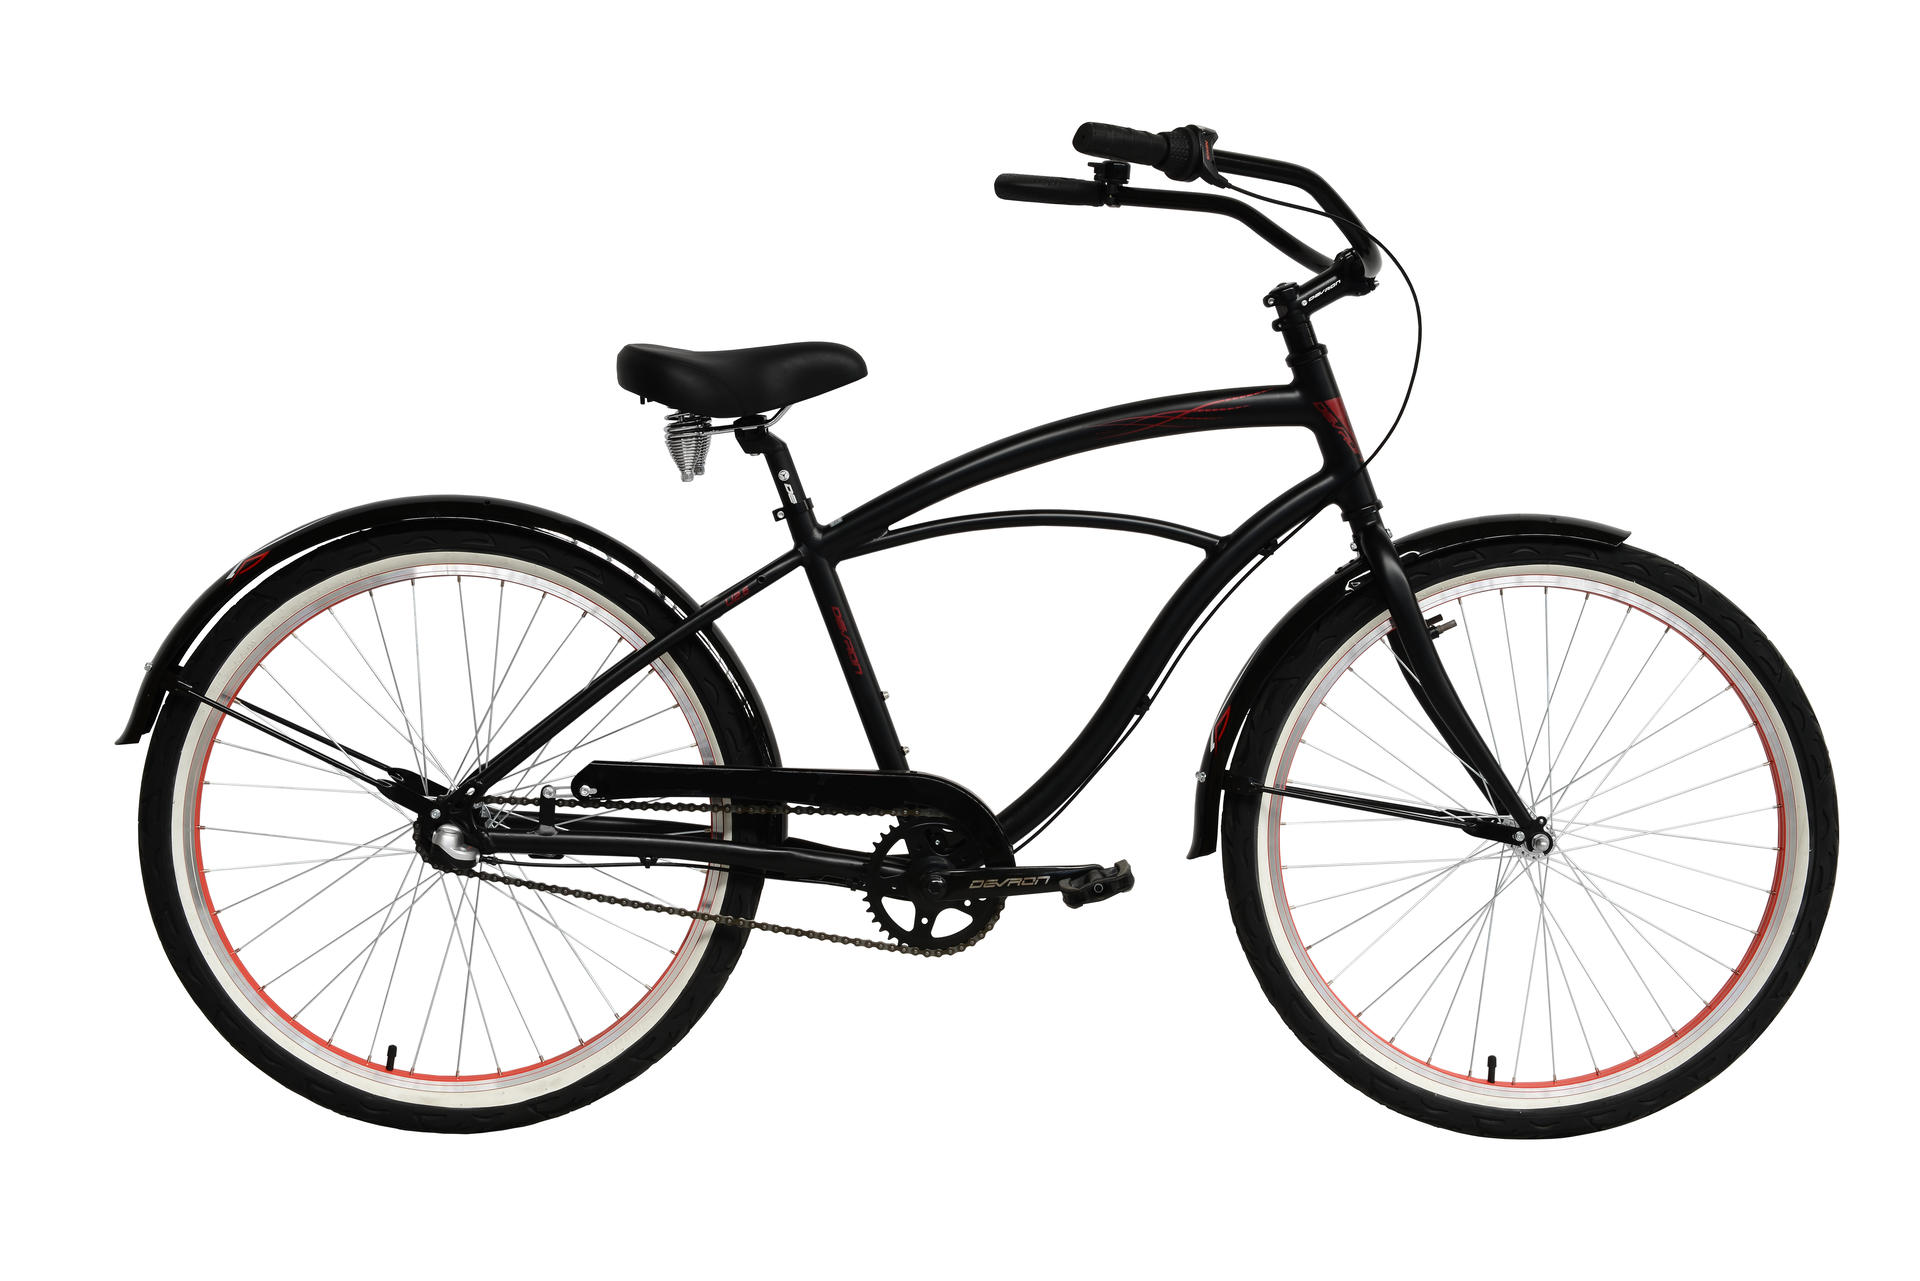 Bicicletta cruiser da uomo Devron Man U.Cruz.U2.6 Black Passion 470 mm